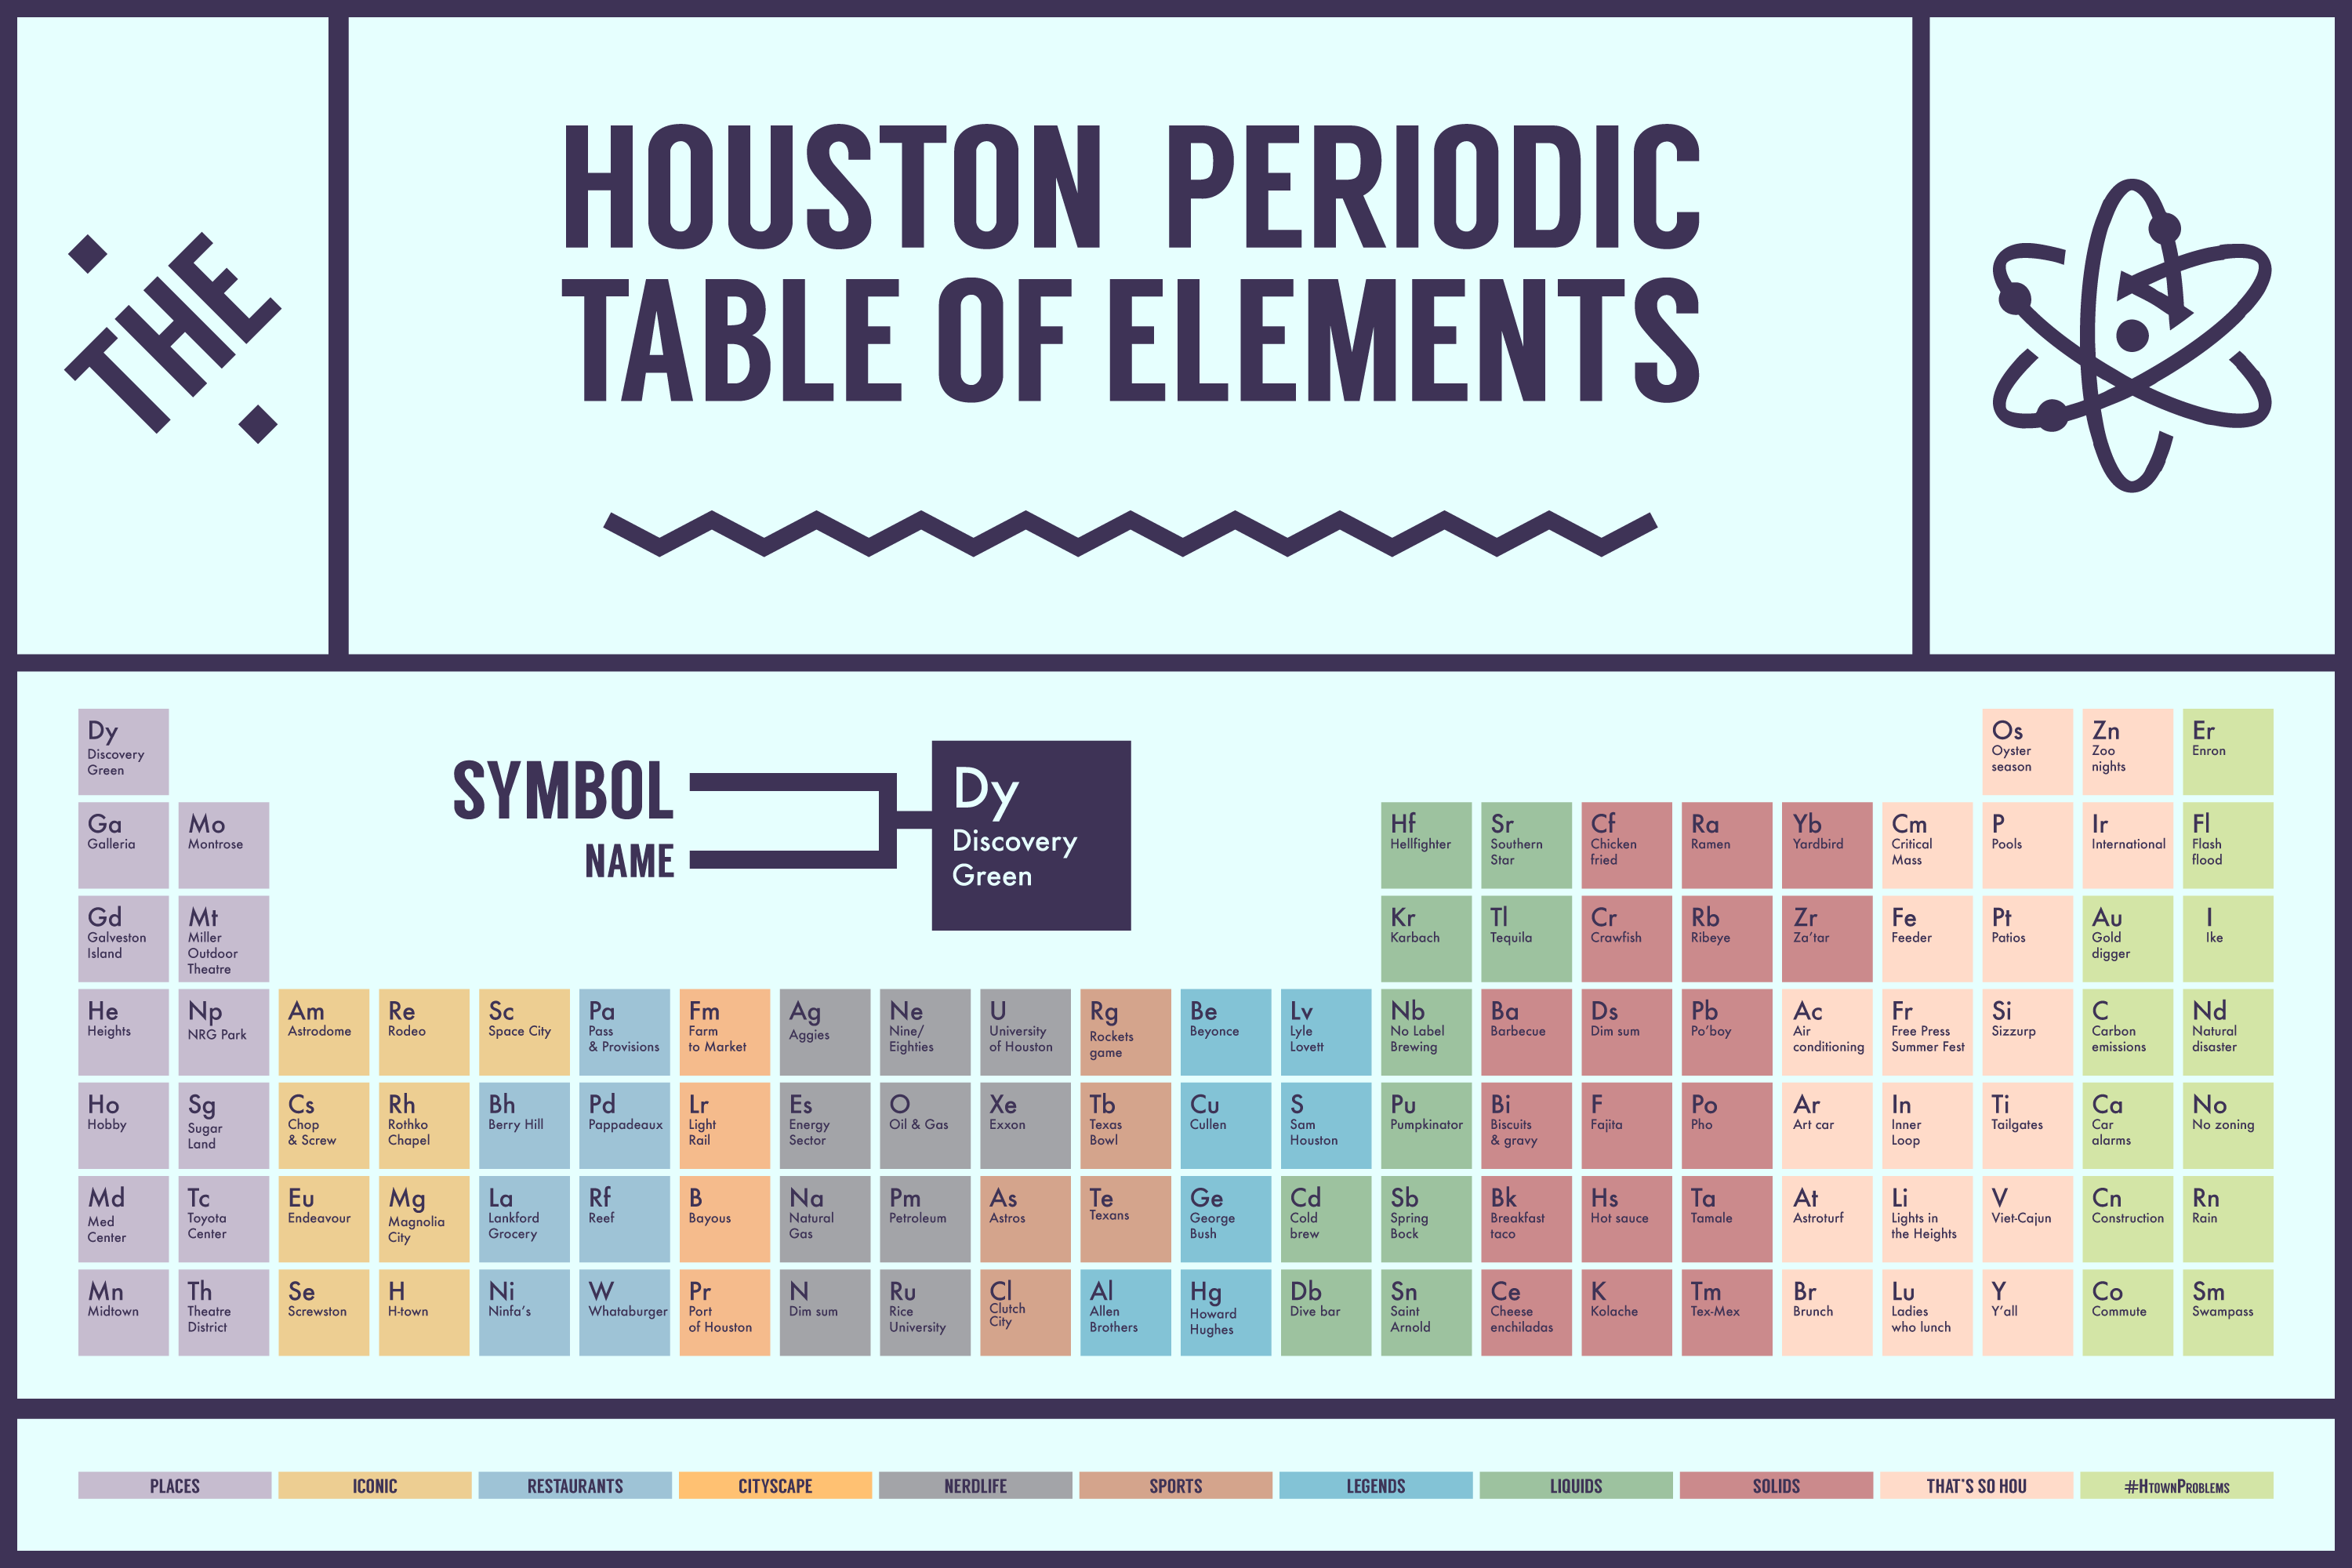 Periodic table of essential houston foods locations celebrities find the full size periodic table here urtaz Images